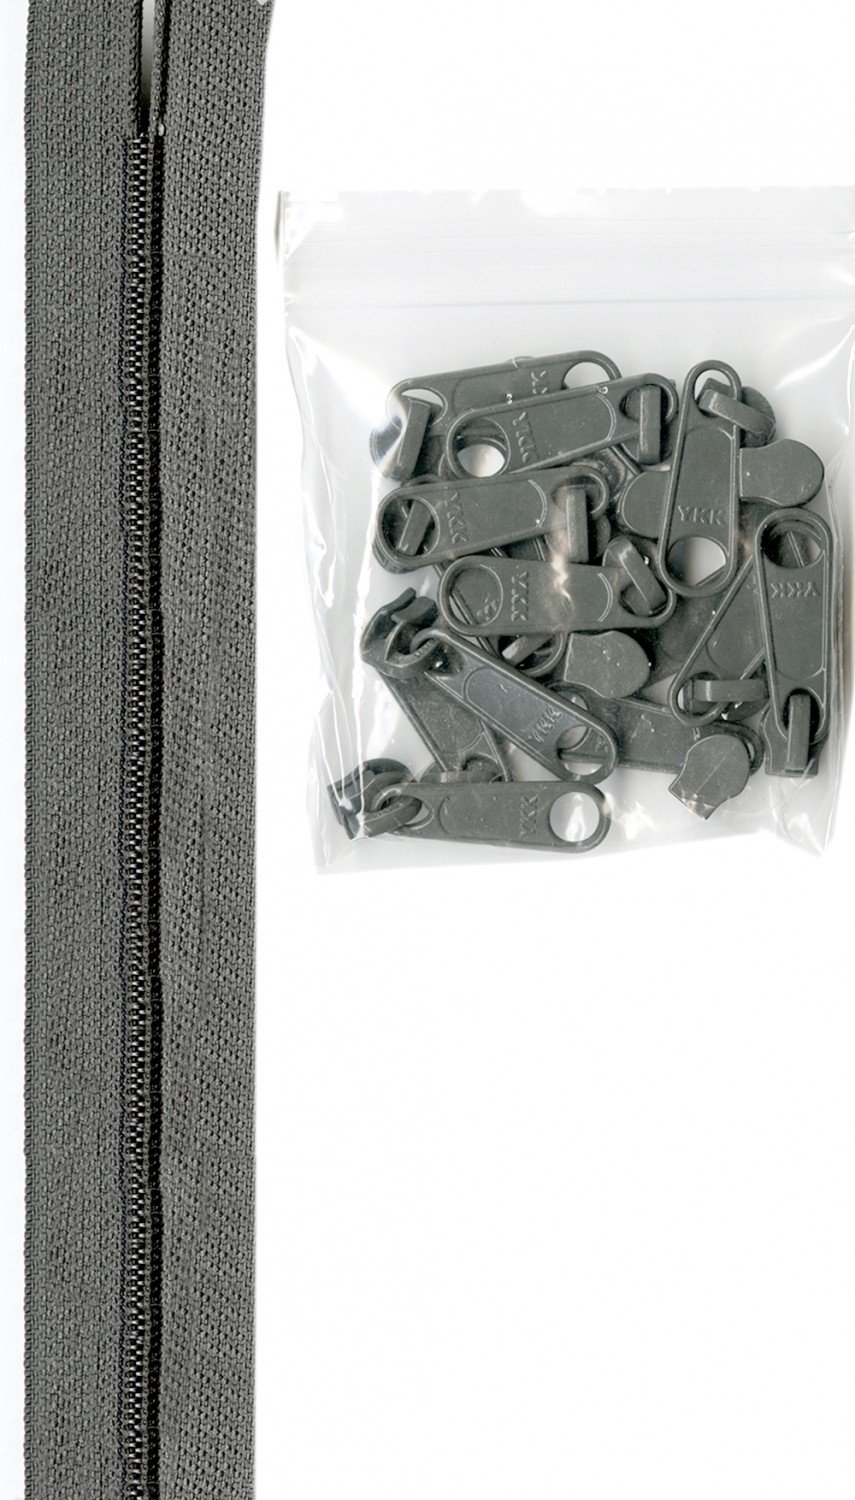 Zippers By The Inch 16mm #4.5 zipper chain Pewter